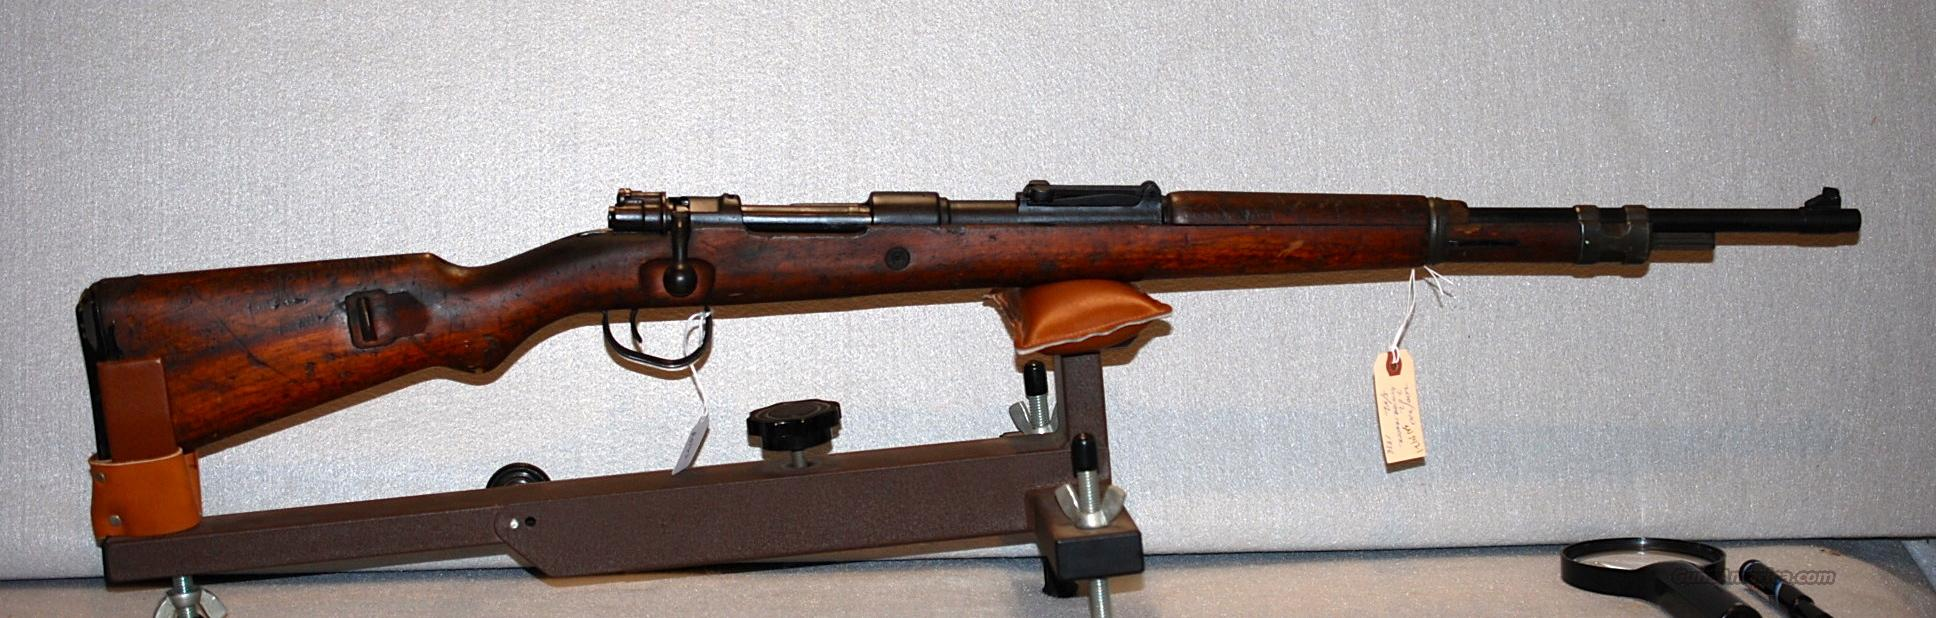 Mauser, German, K98, Russian capture/Israeli   Guns > Rifles > Mauser Rifles > German